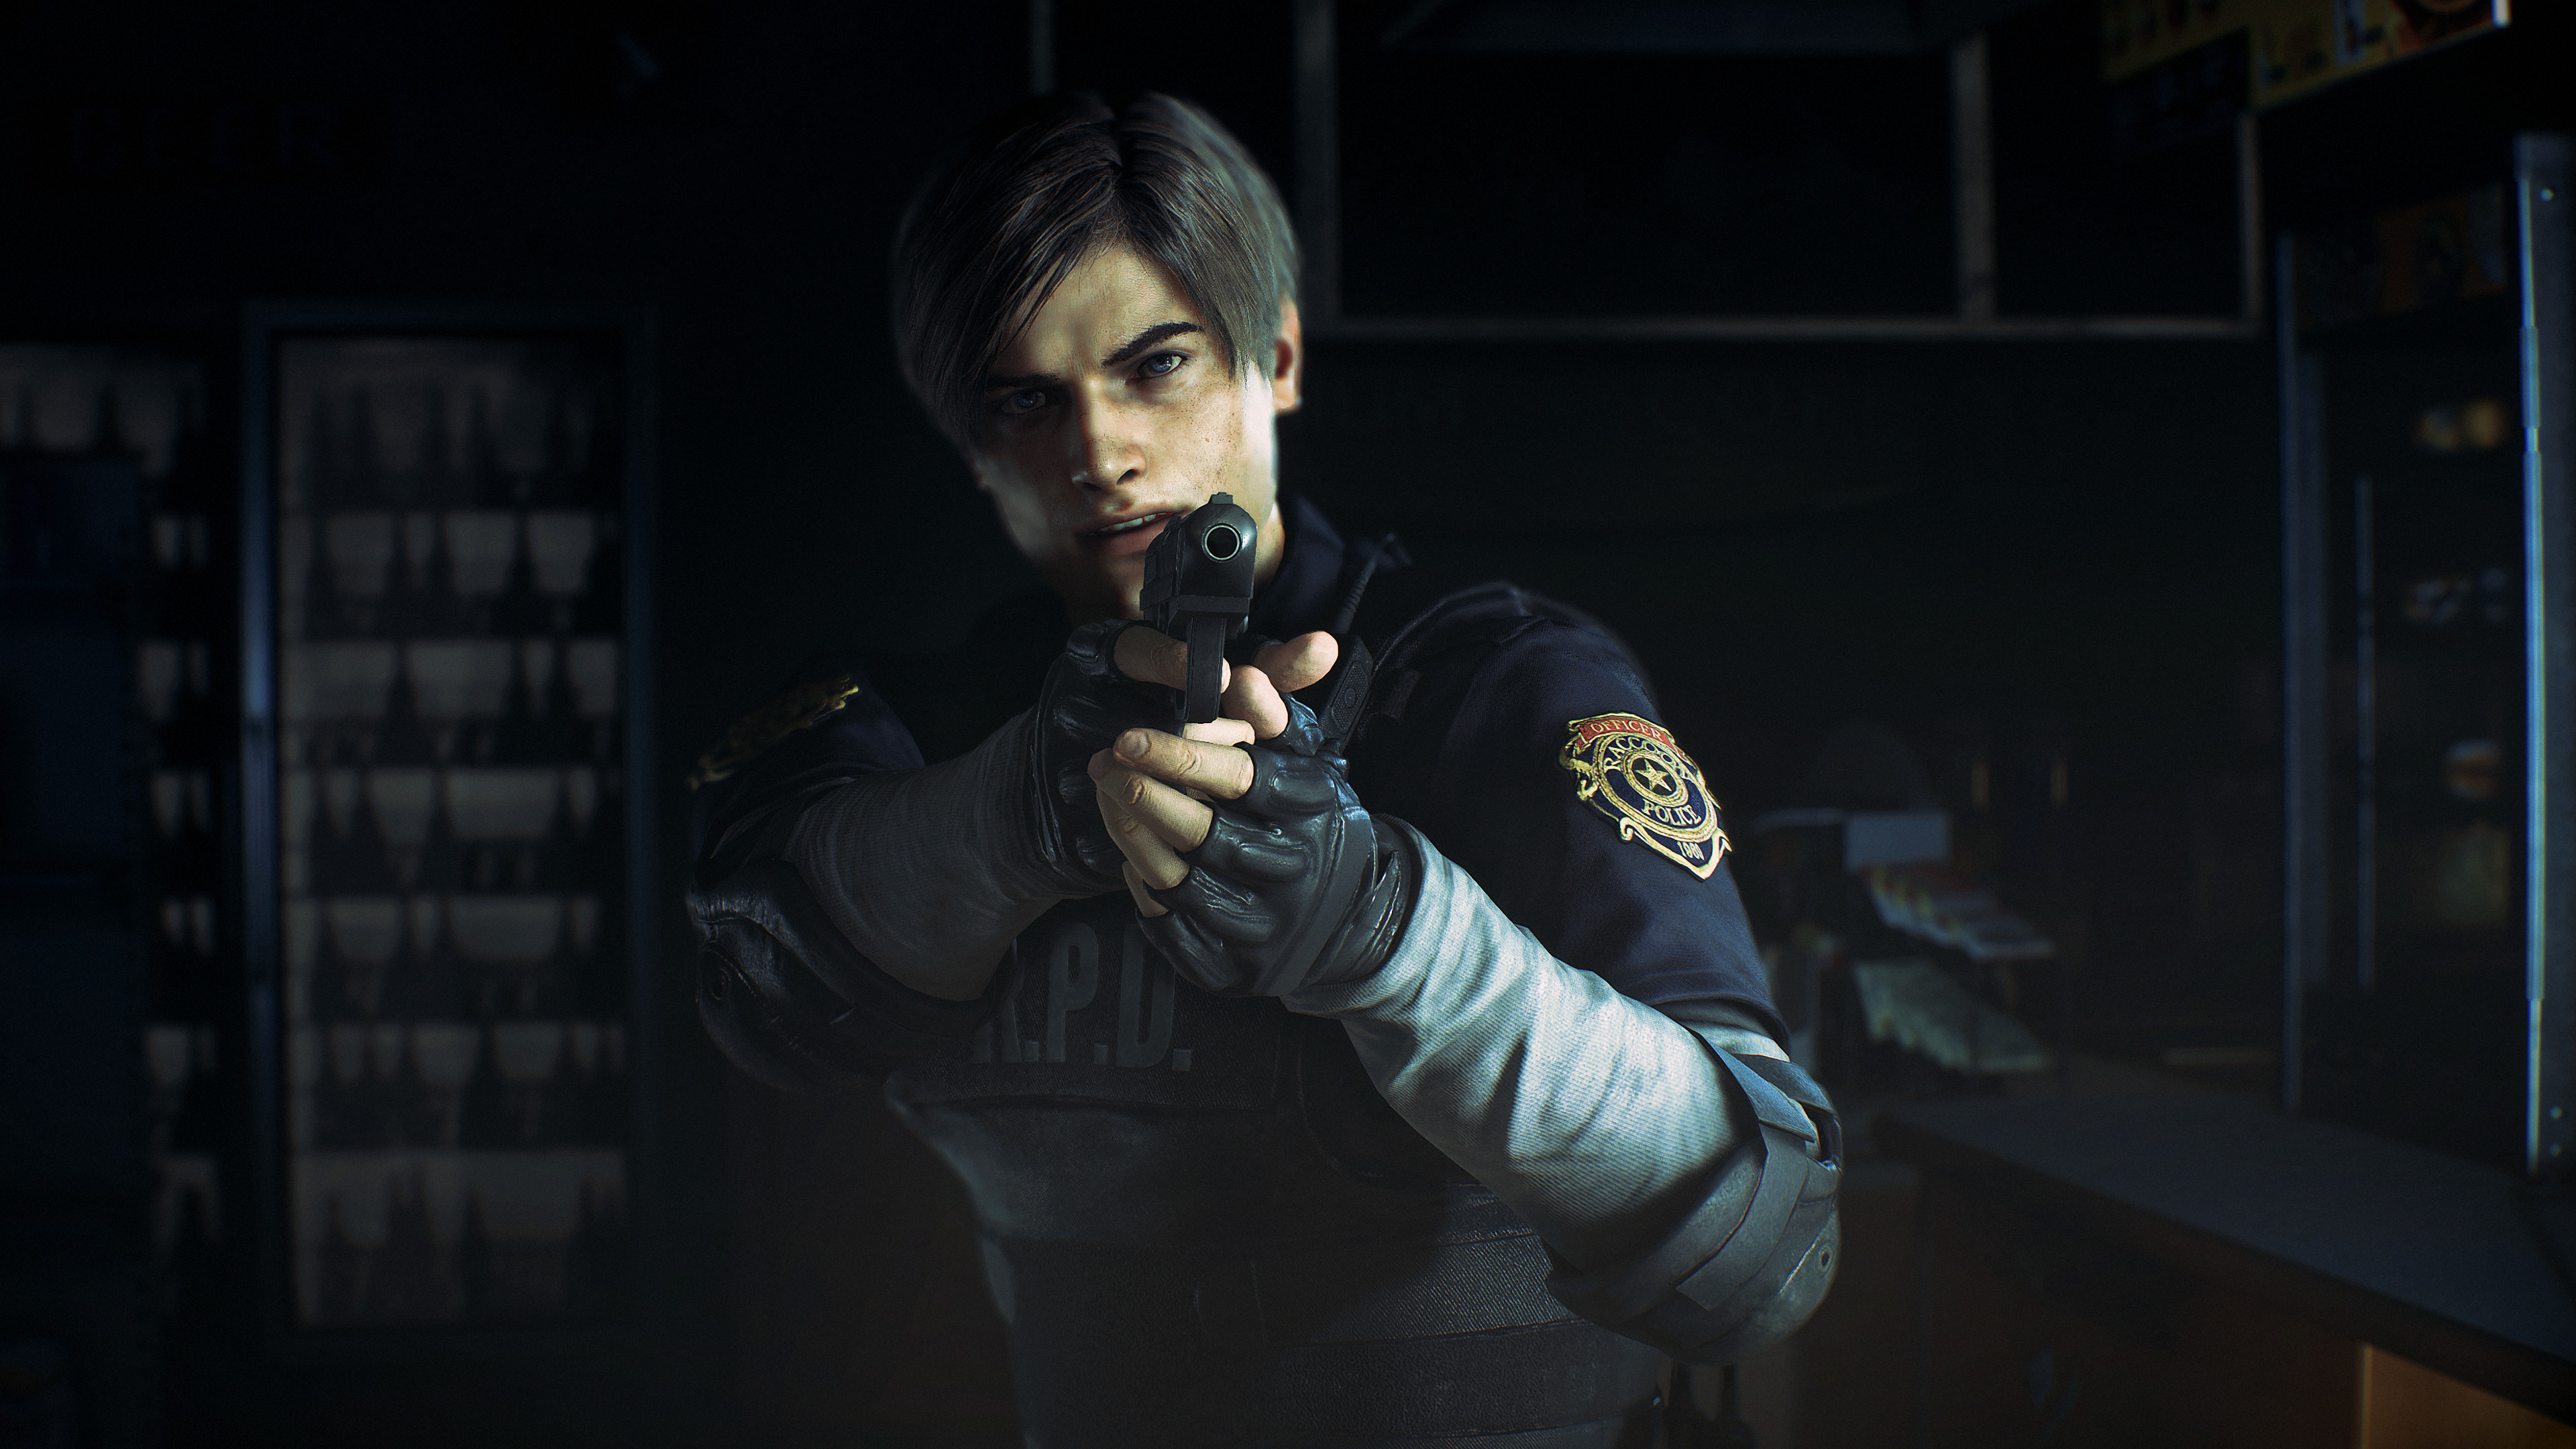 leon kennedy resident evil 2 4k 1537691727 - Leon Kennedy Resident Evil 2 4k - resident evil 2 wallpapers, leon kennedy wallpapers, hd-wallpapers, games wallpapers, 4k-wallpapers, 2019 games wallpapers